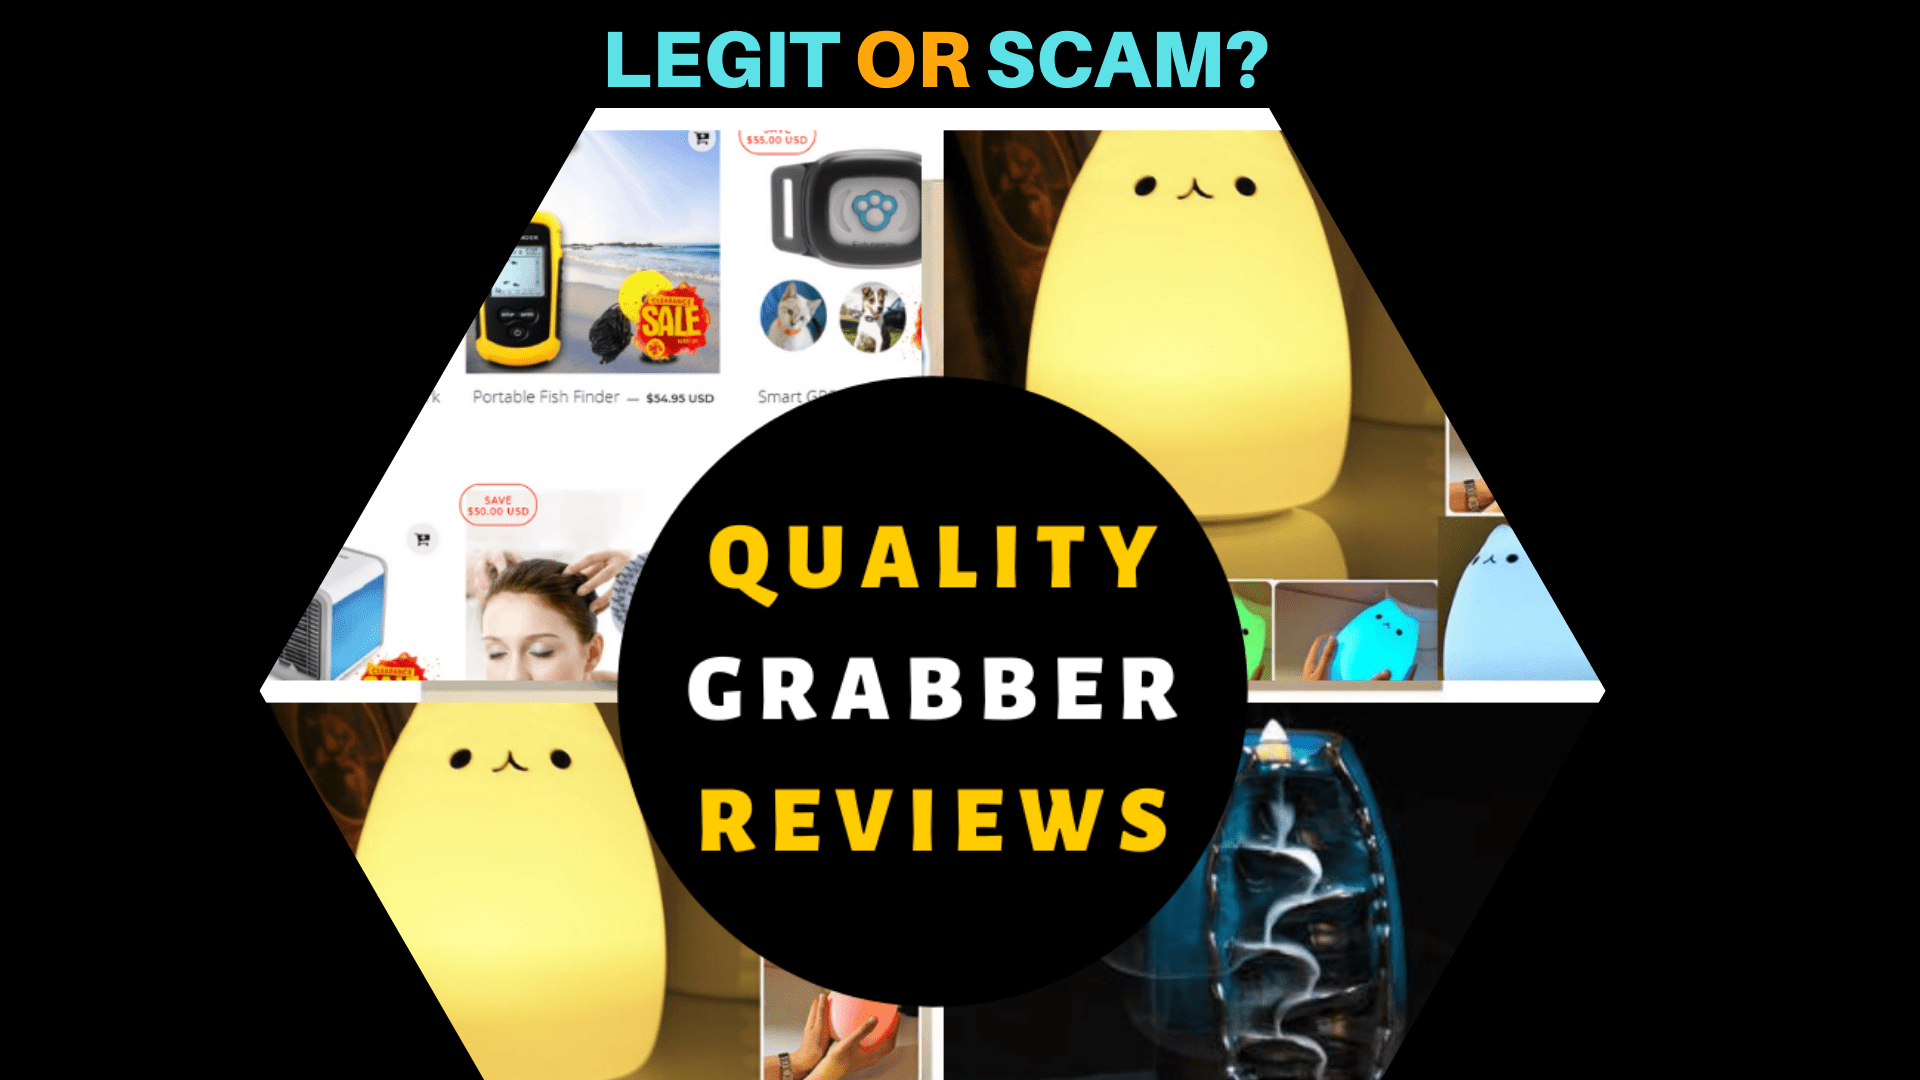 Quality Grabber reviews – Legit or Scam? Must Read